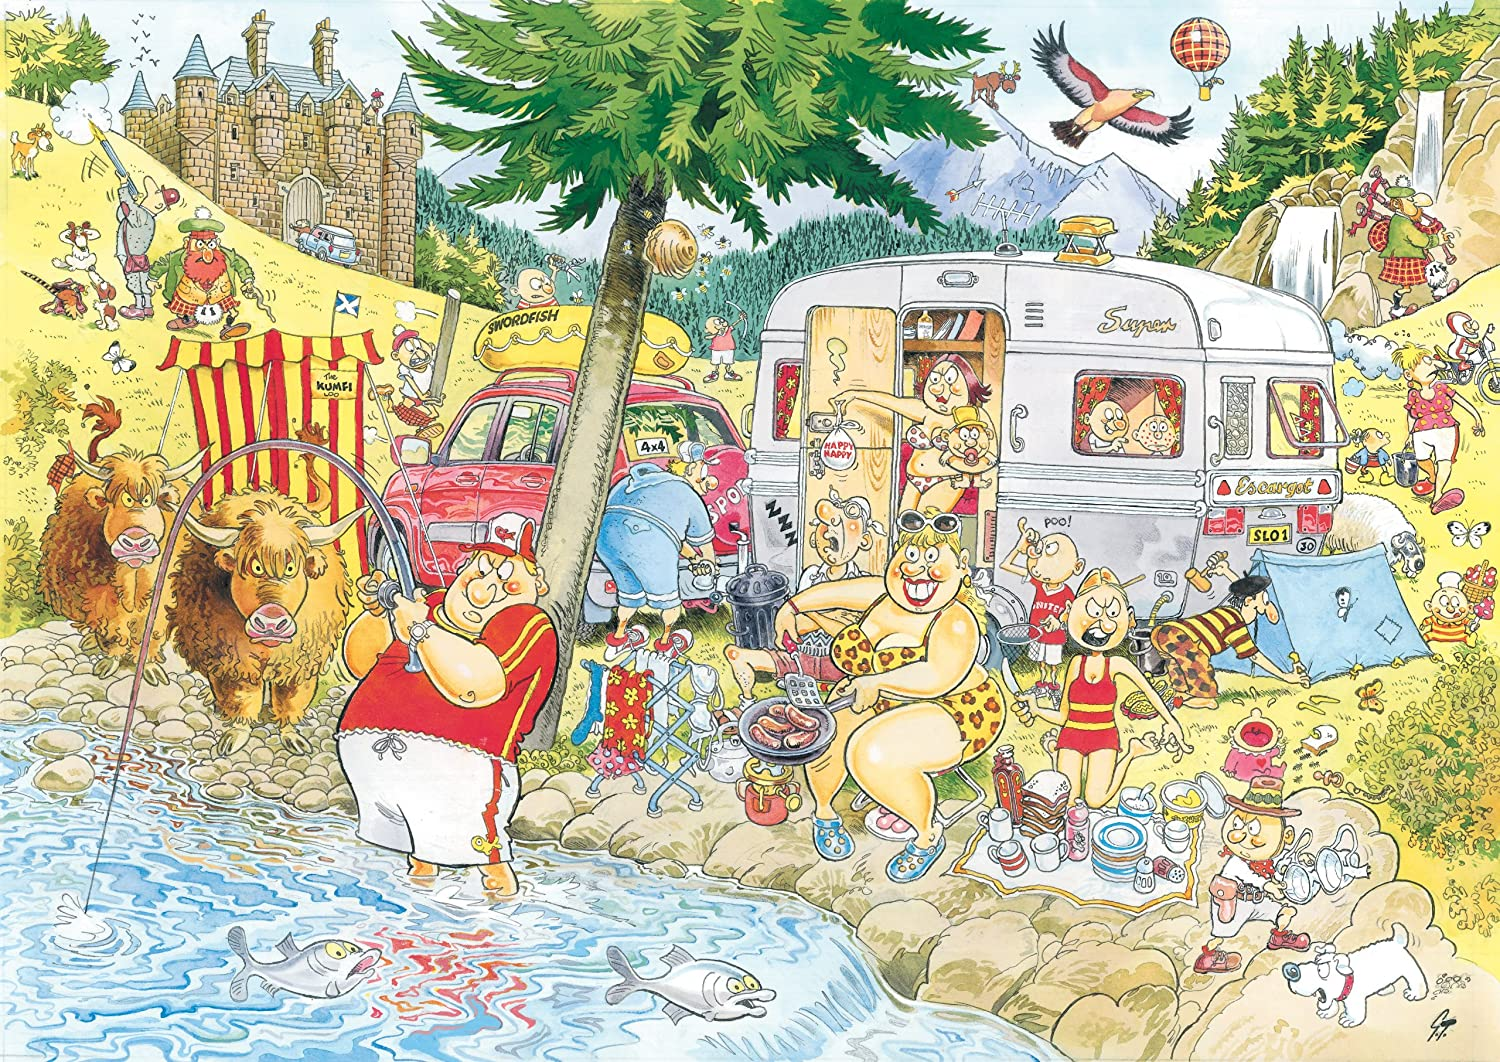 Amazon.com: Wasgij Mystery: Camping Commotion - 1000 Pieces Puzzle ...